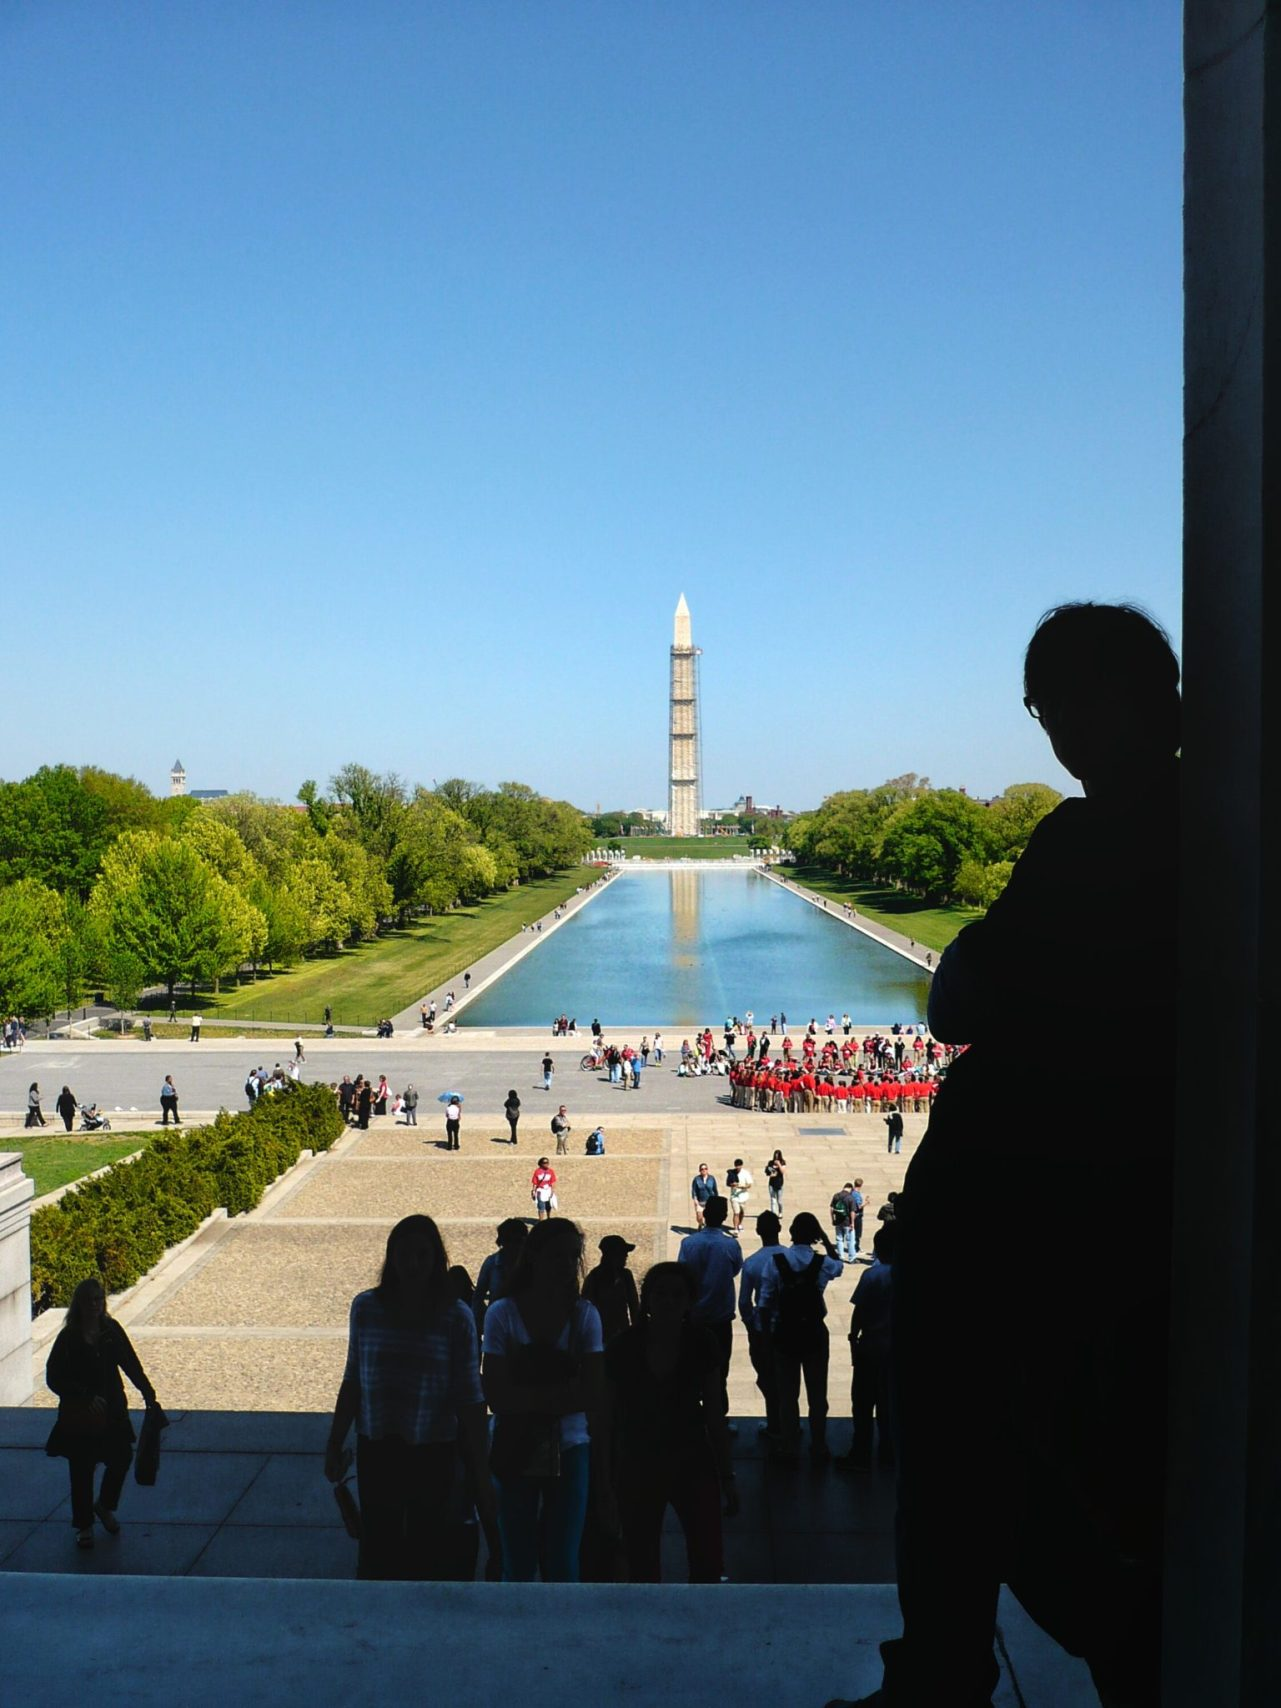 Washington Monument and Reflection Pool, Washington DC